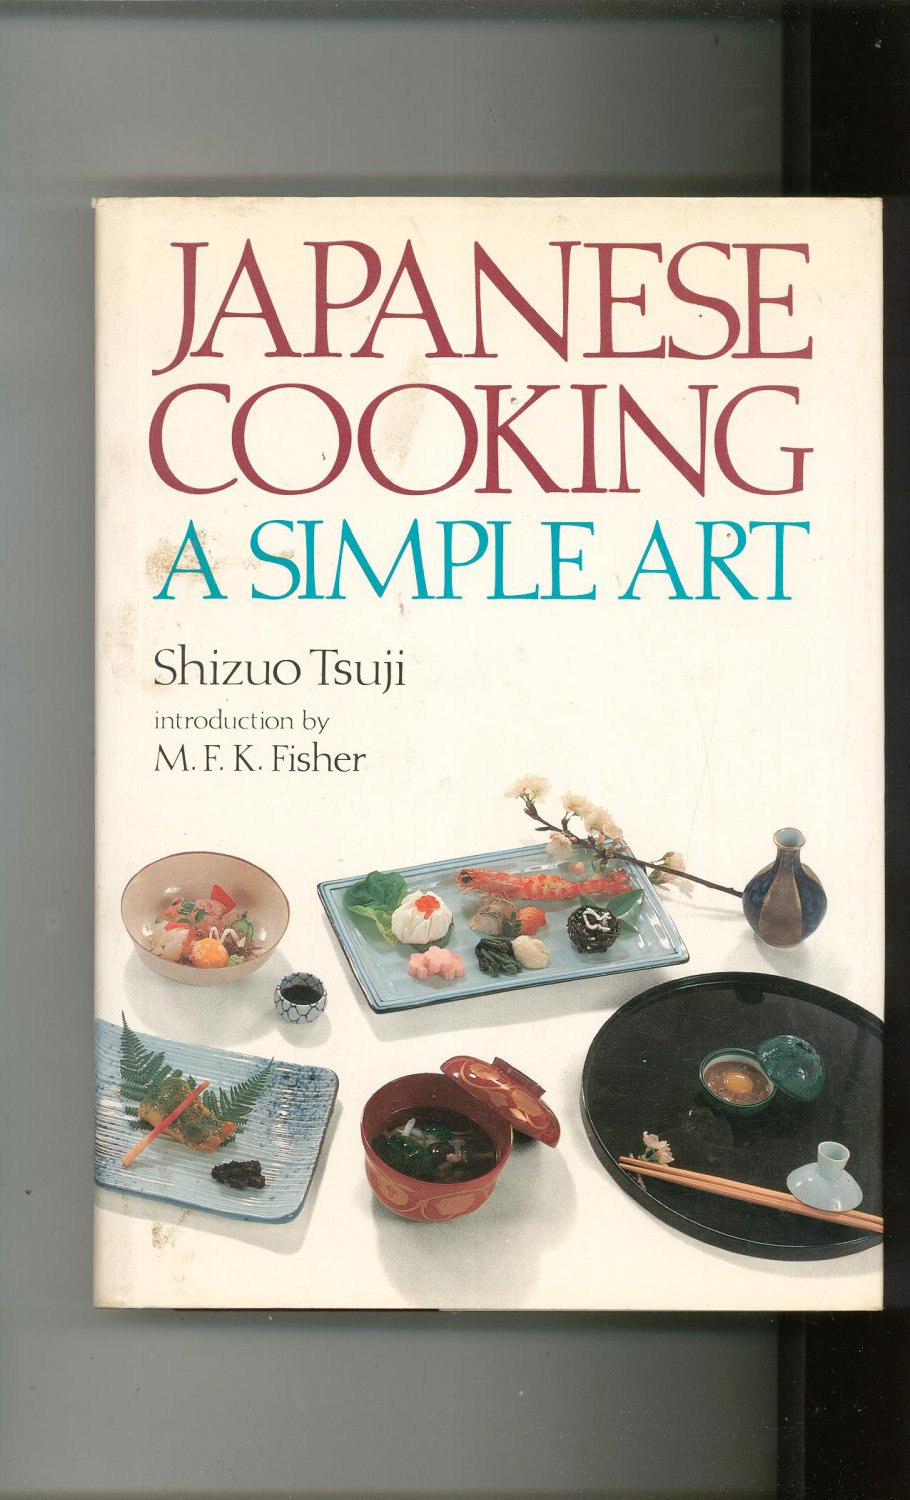 Japanese Cooking A Simple Art Cookbook By Shizuo Tsuji 0870113992